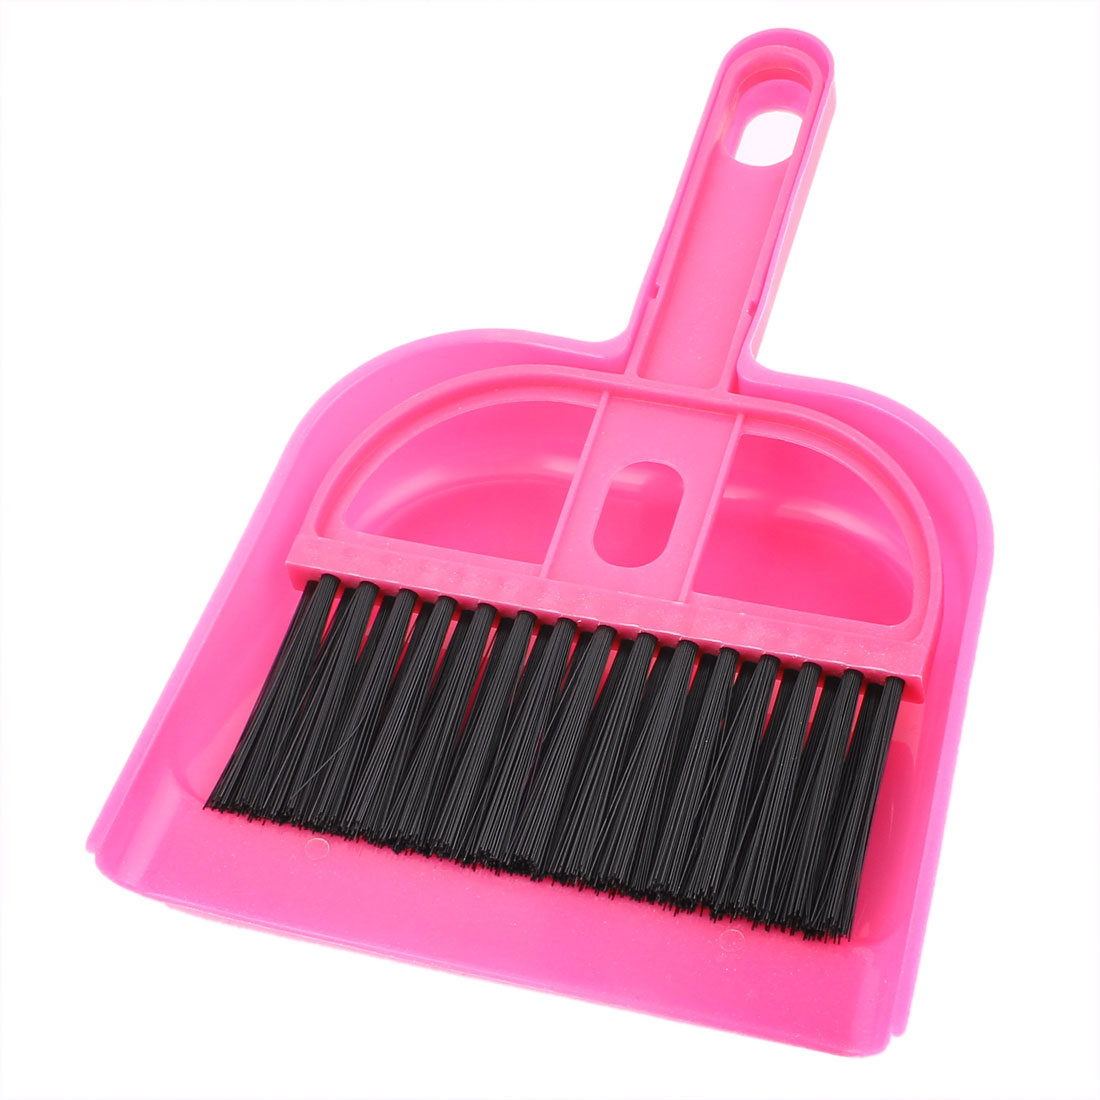 Car Window Keyboard Air Outlet Vent Cleaning Sweeping Brush Dustpan Set Fuchsia